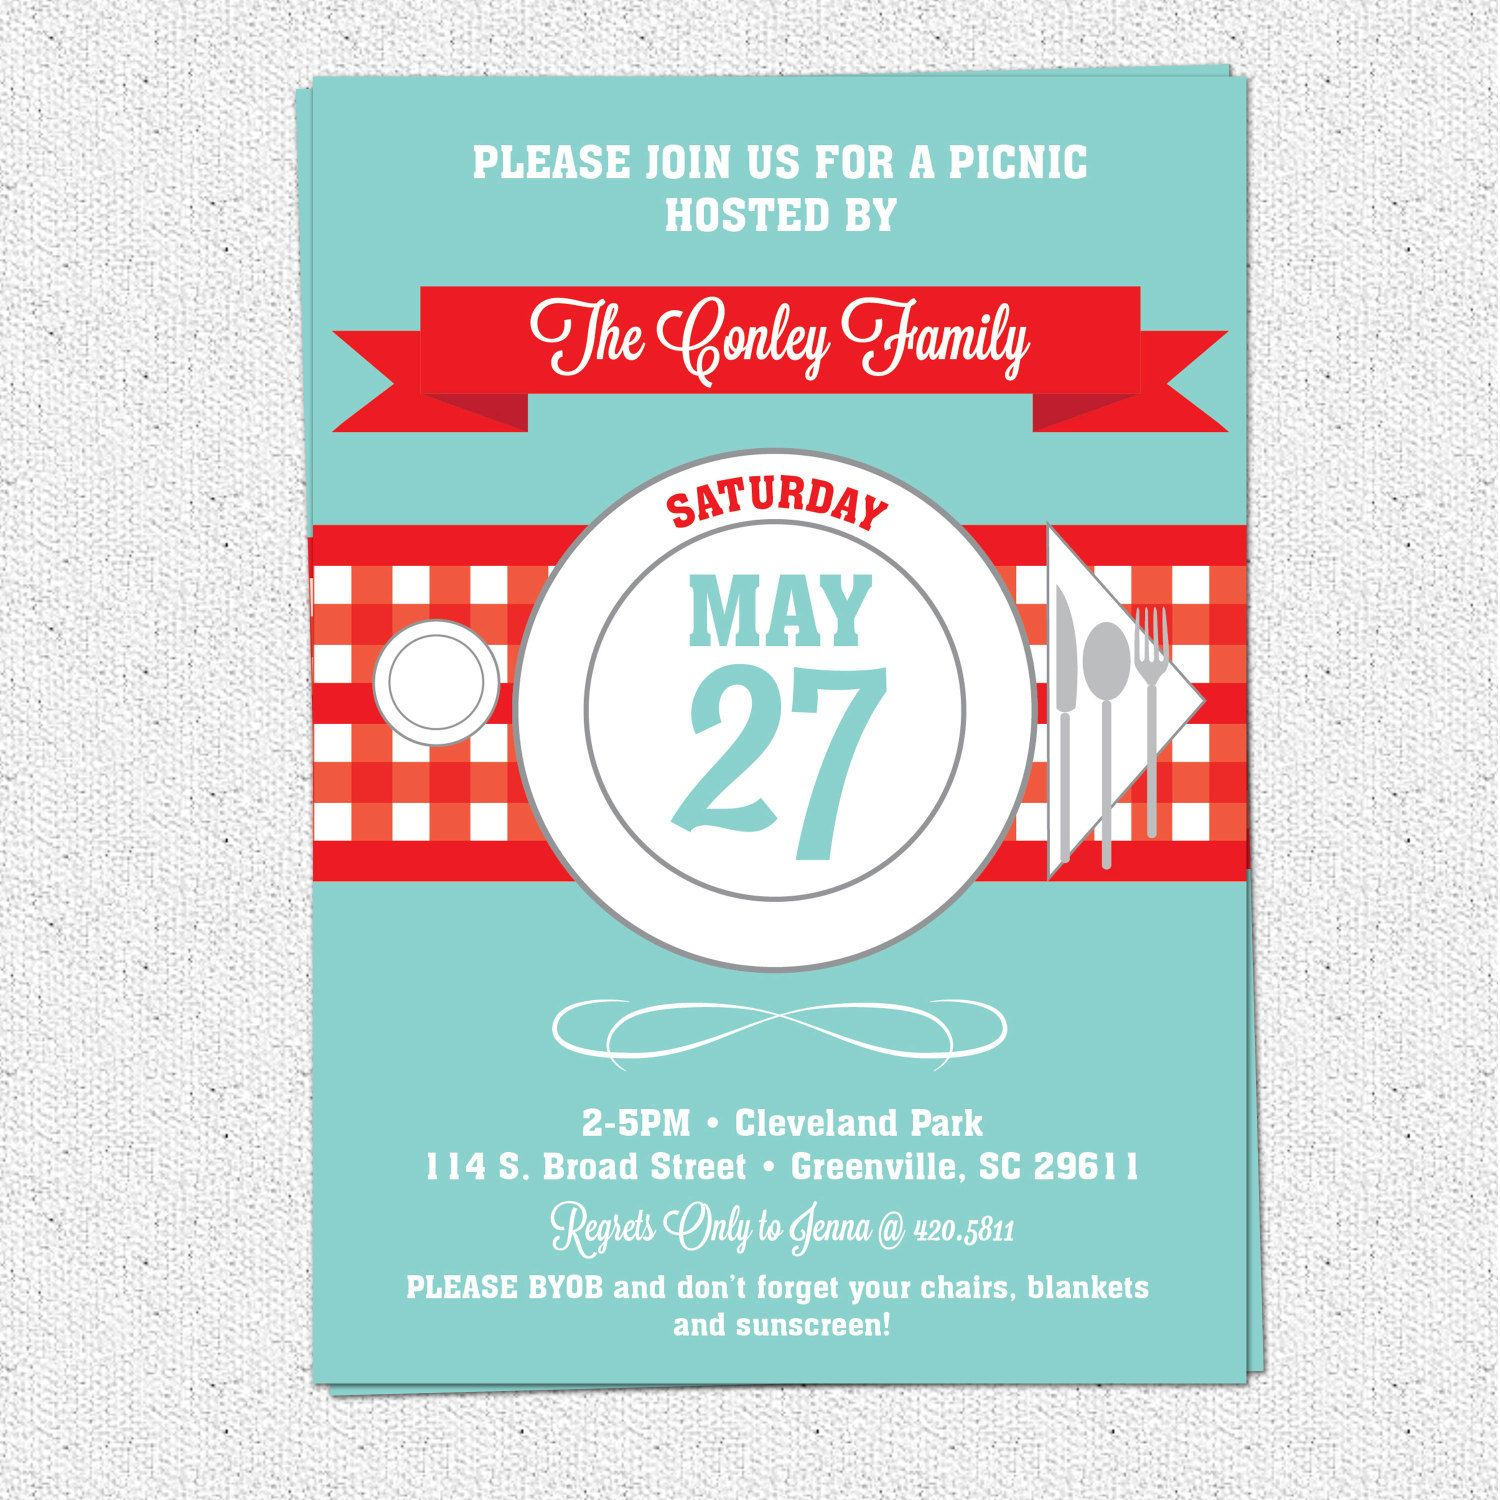 St Birthday Bash  Picnic Invite  AydenS St Birthday Bash